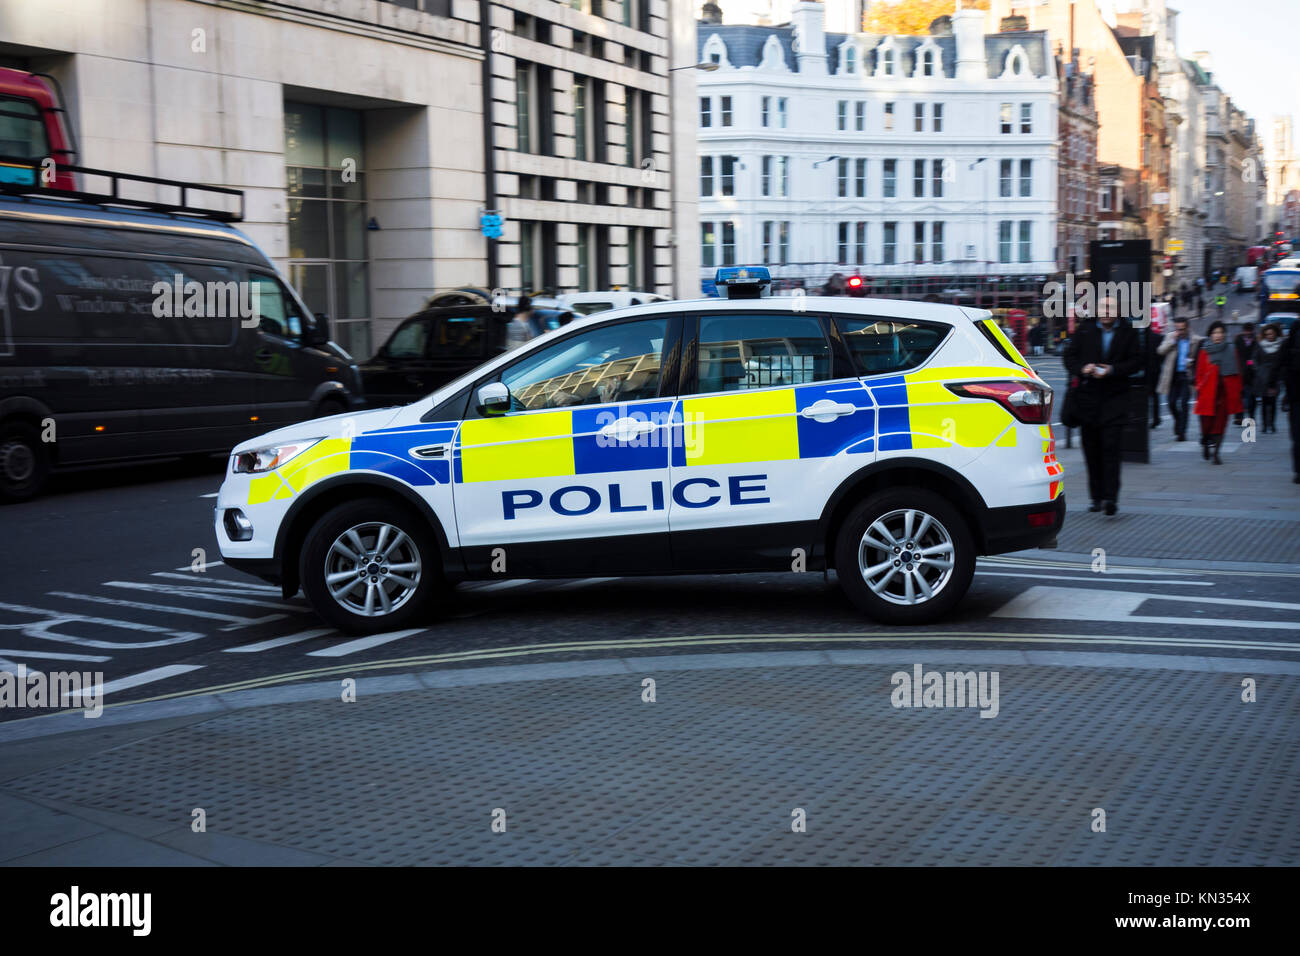 City of London police car vehicle at a junction on Ludgate Hill, UK - Stock Image